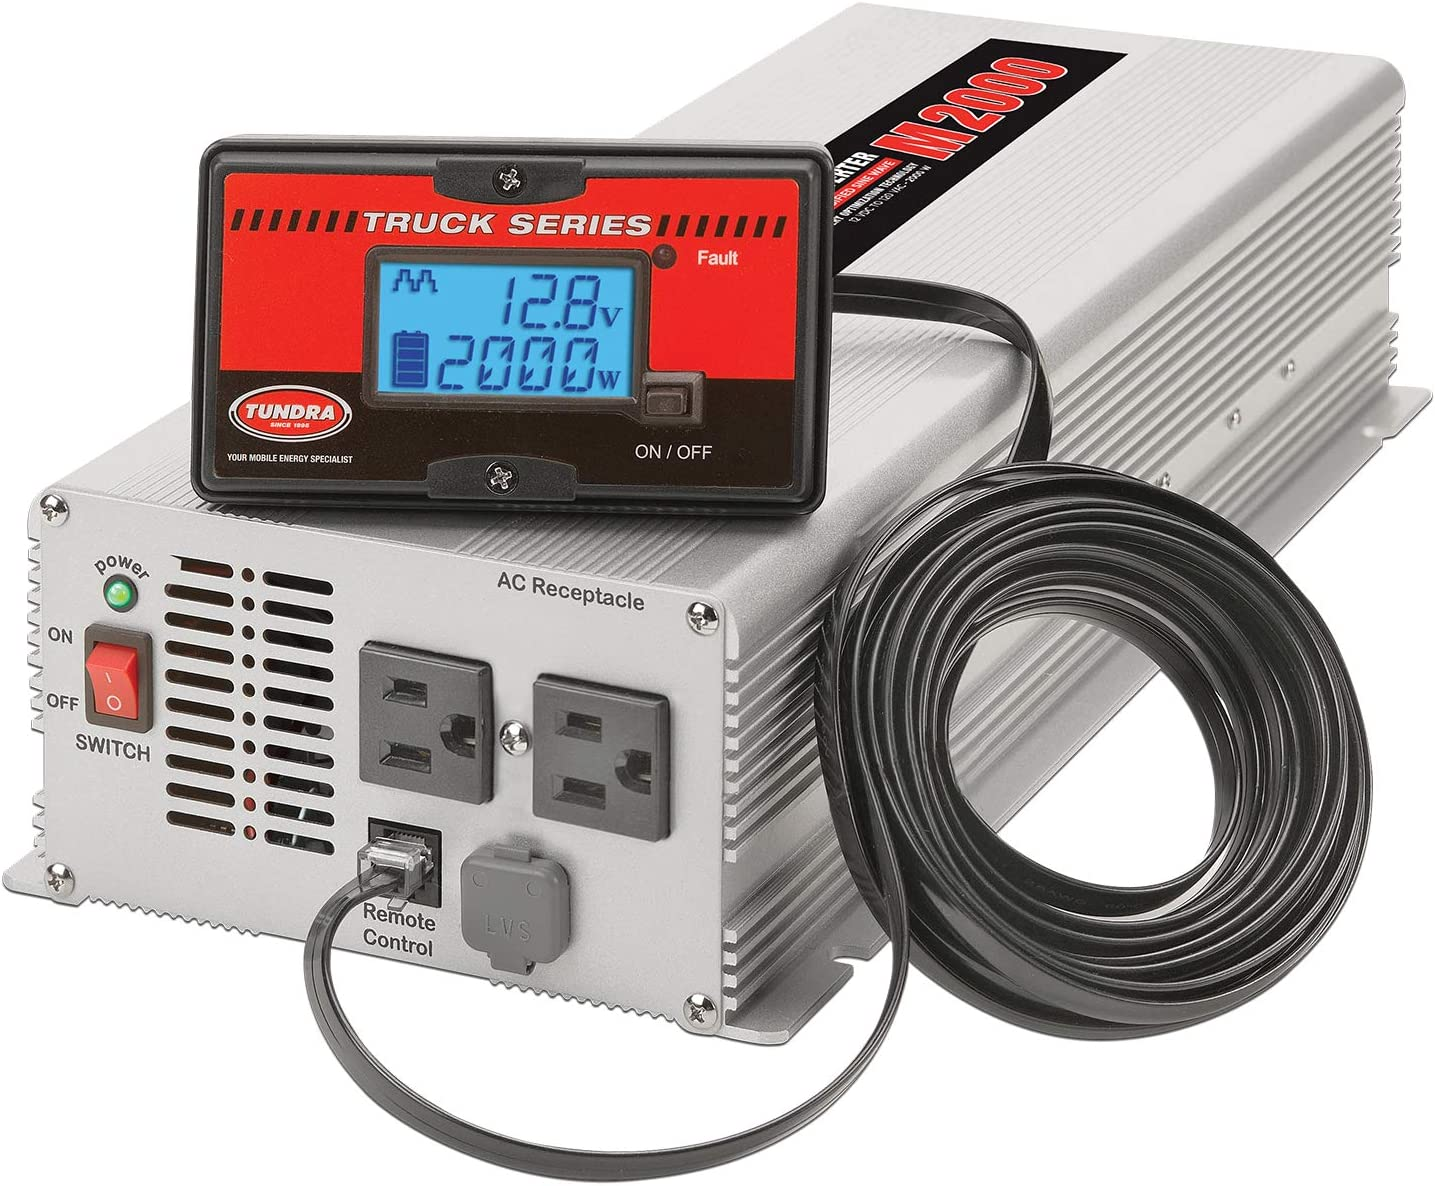 M2000 TUNDRA M Series Power Inverter Modified SINE Wave 2000W // 12 Volts DC to 120 Volts AC